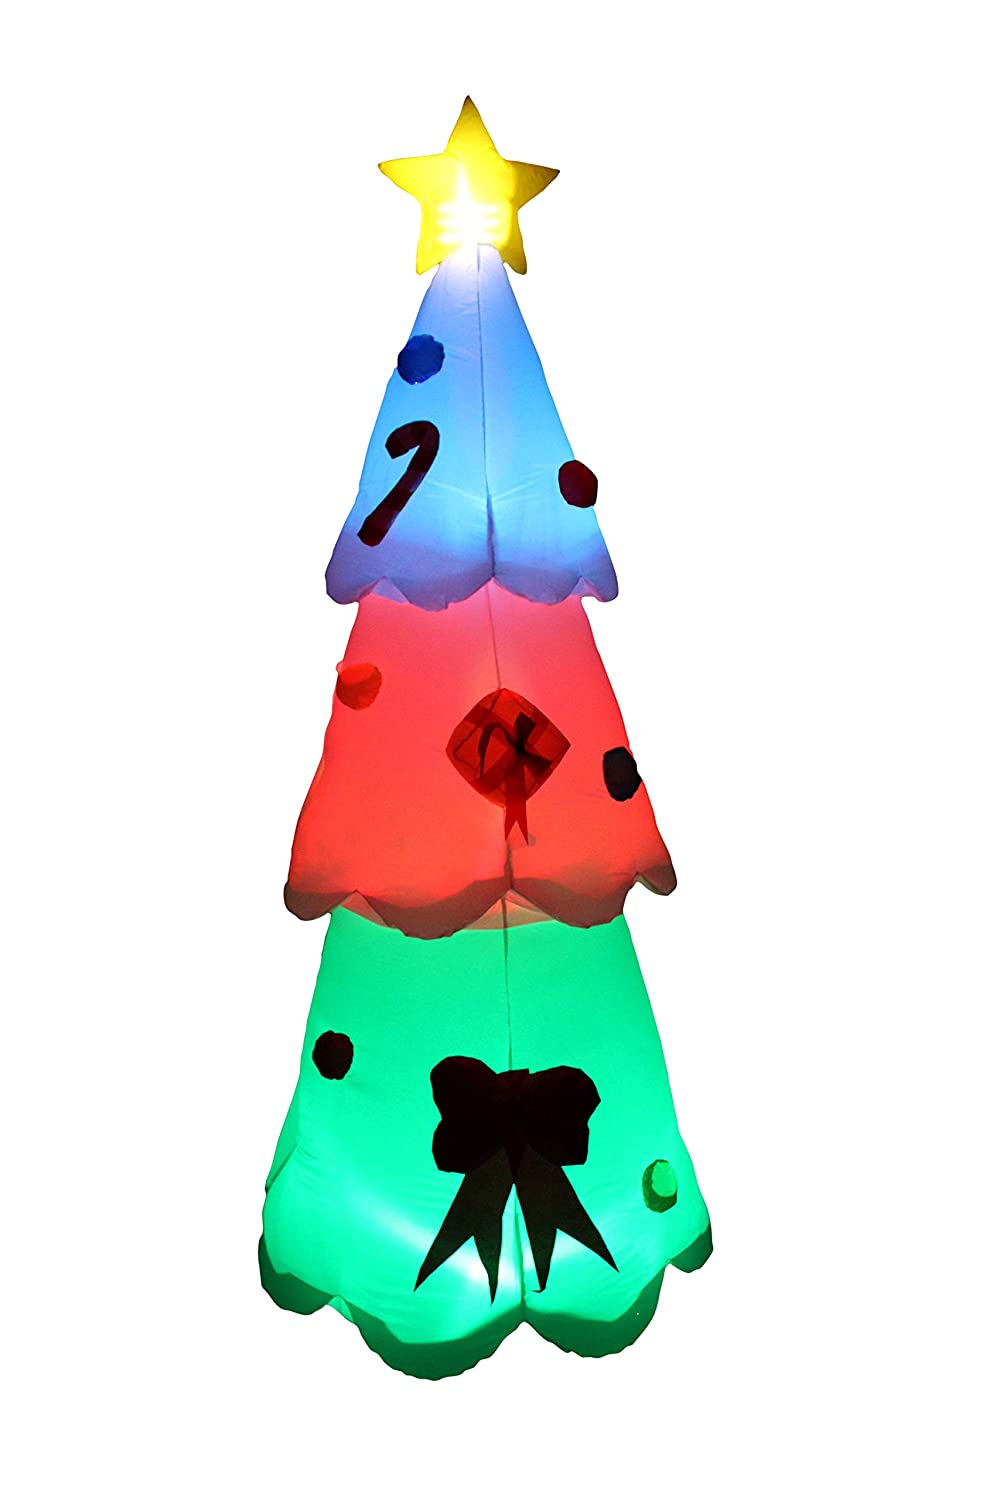 BZB Goods 8 Foot Tall Christmas Inflatable LED Color Changing Christmas Tree Lights Decor Outdoor Indoor Holiday Decorations, Blow up Lighted Yard Decor, Lawn Inflatables Home Family Outside